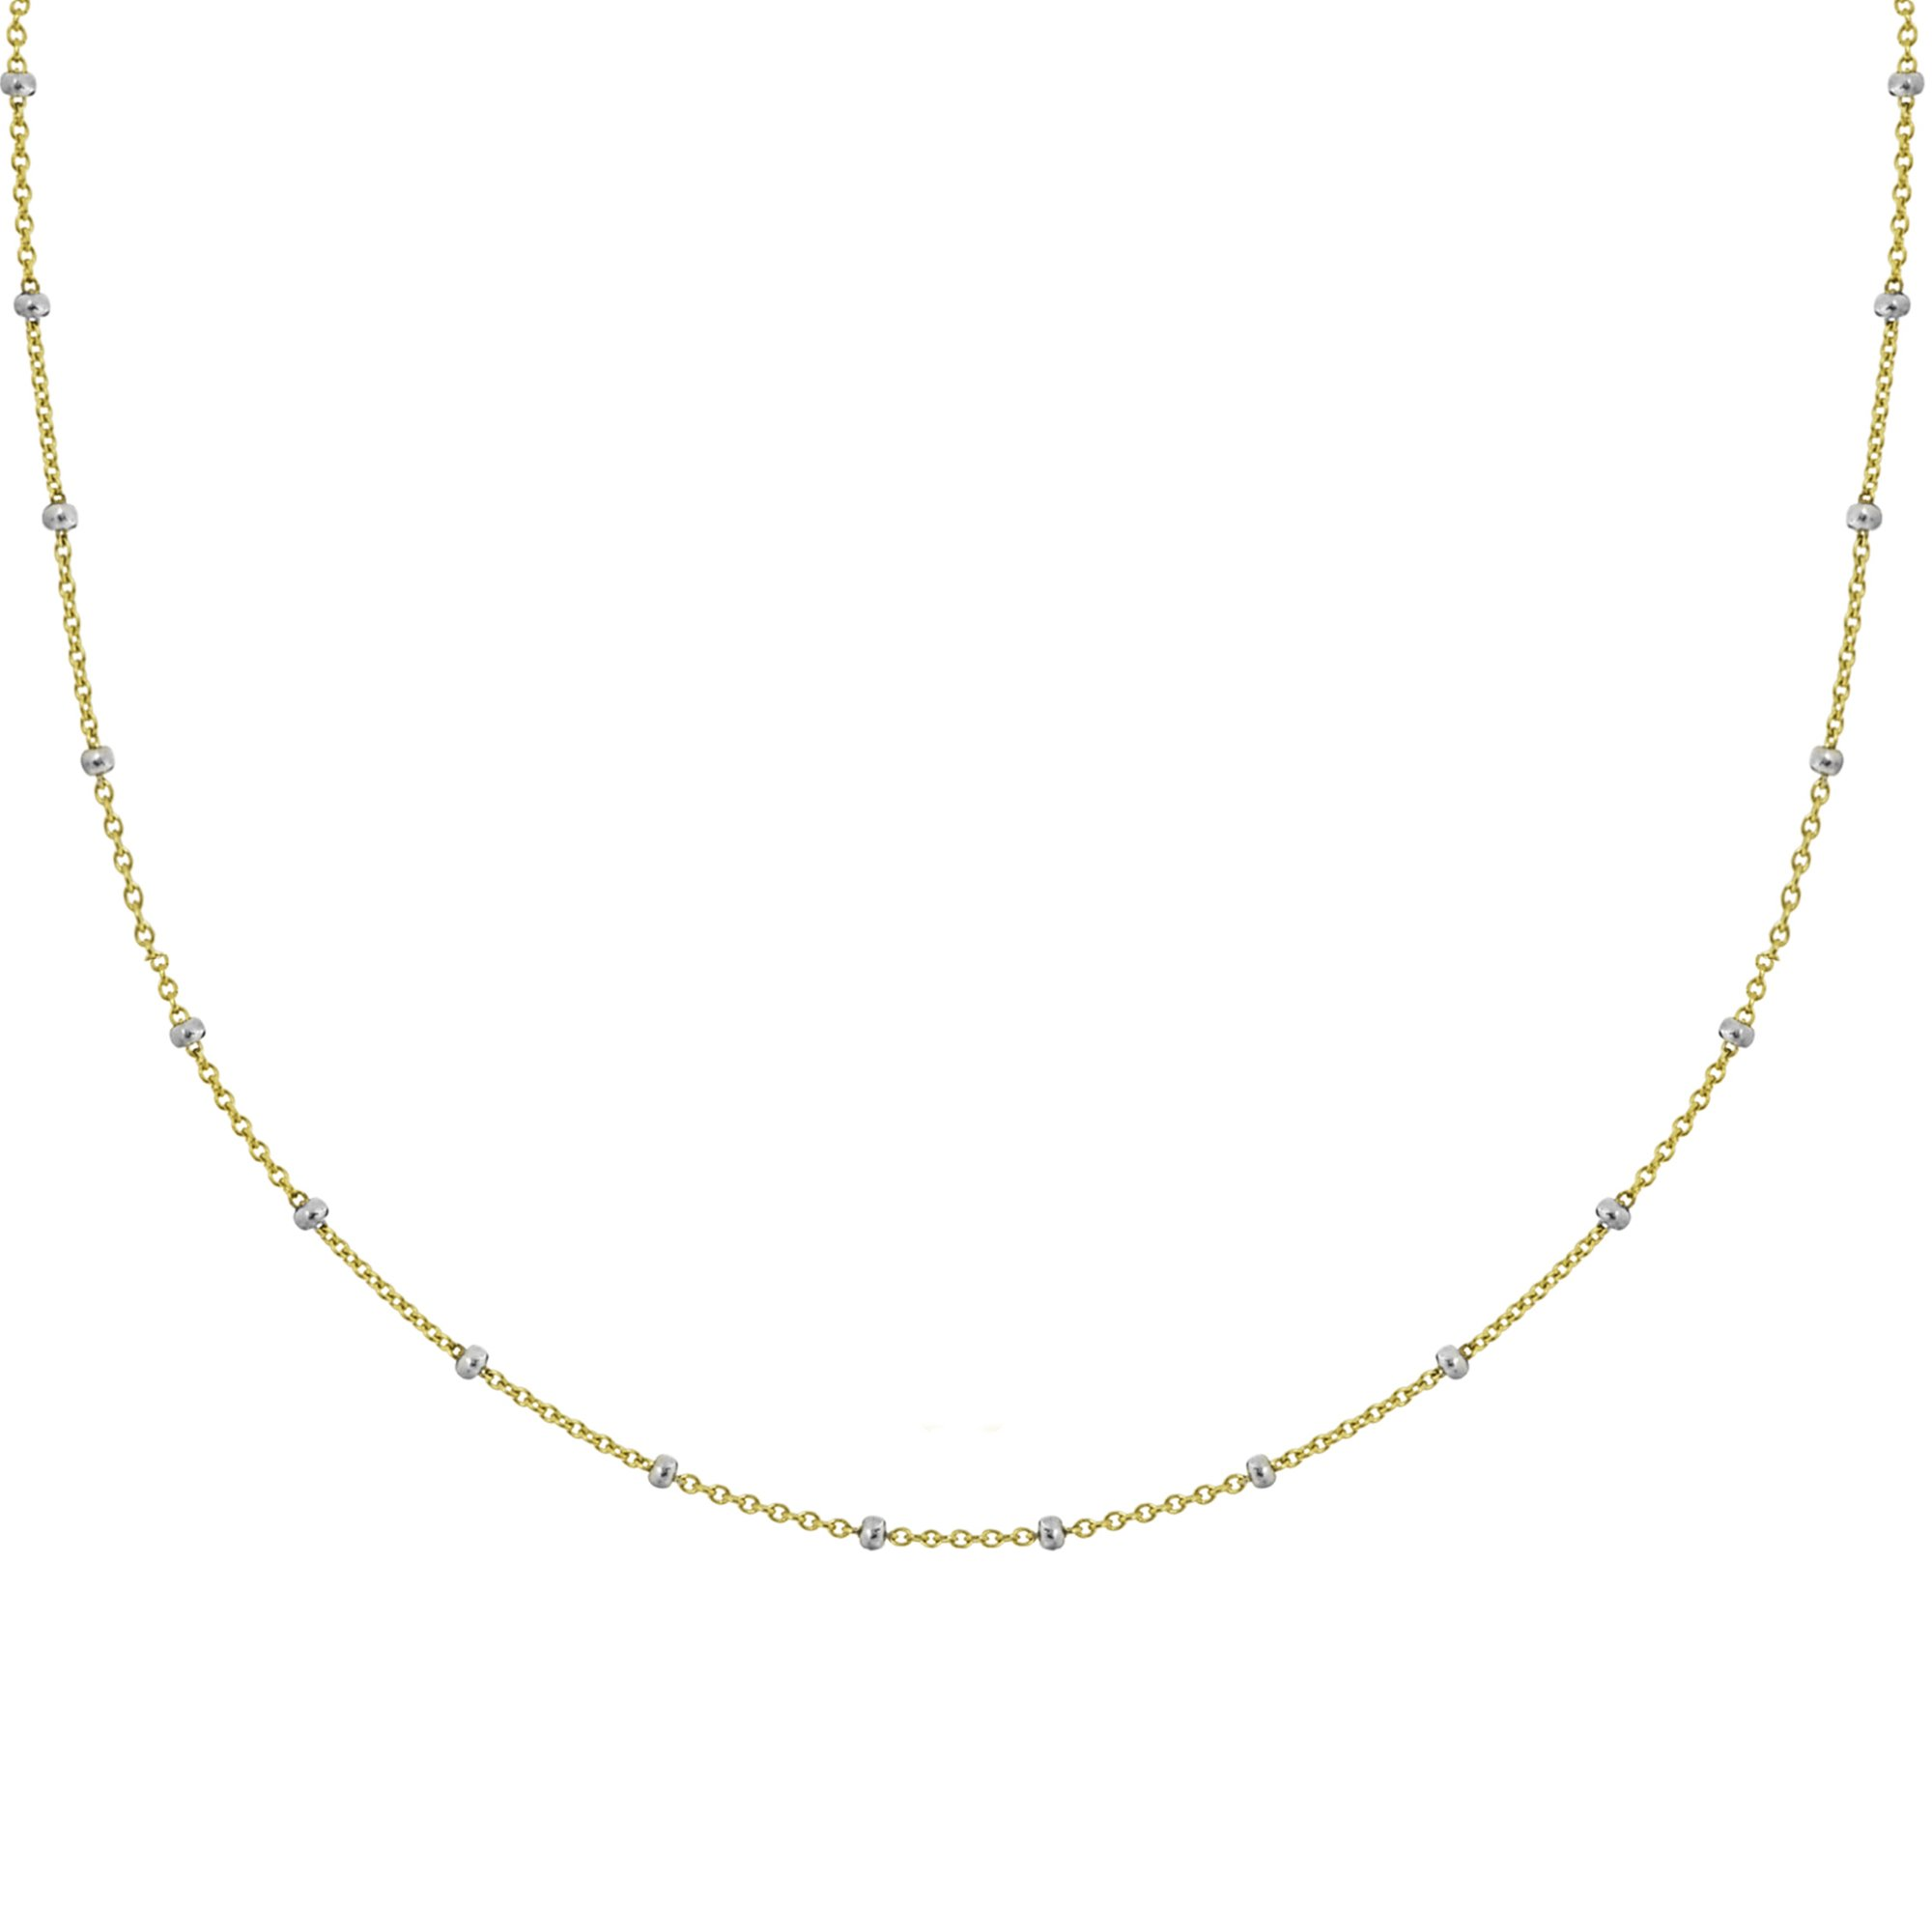 Ritastephens 14k Yellow White Gold Two Tone Saturn Beaded Station Chain Necklace 18 Inches by Ritastephens